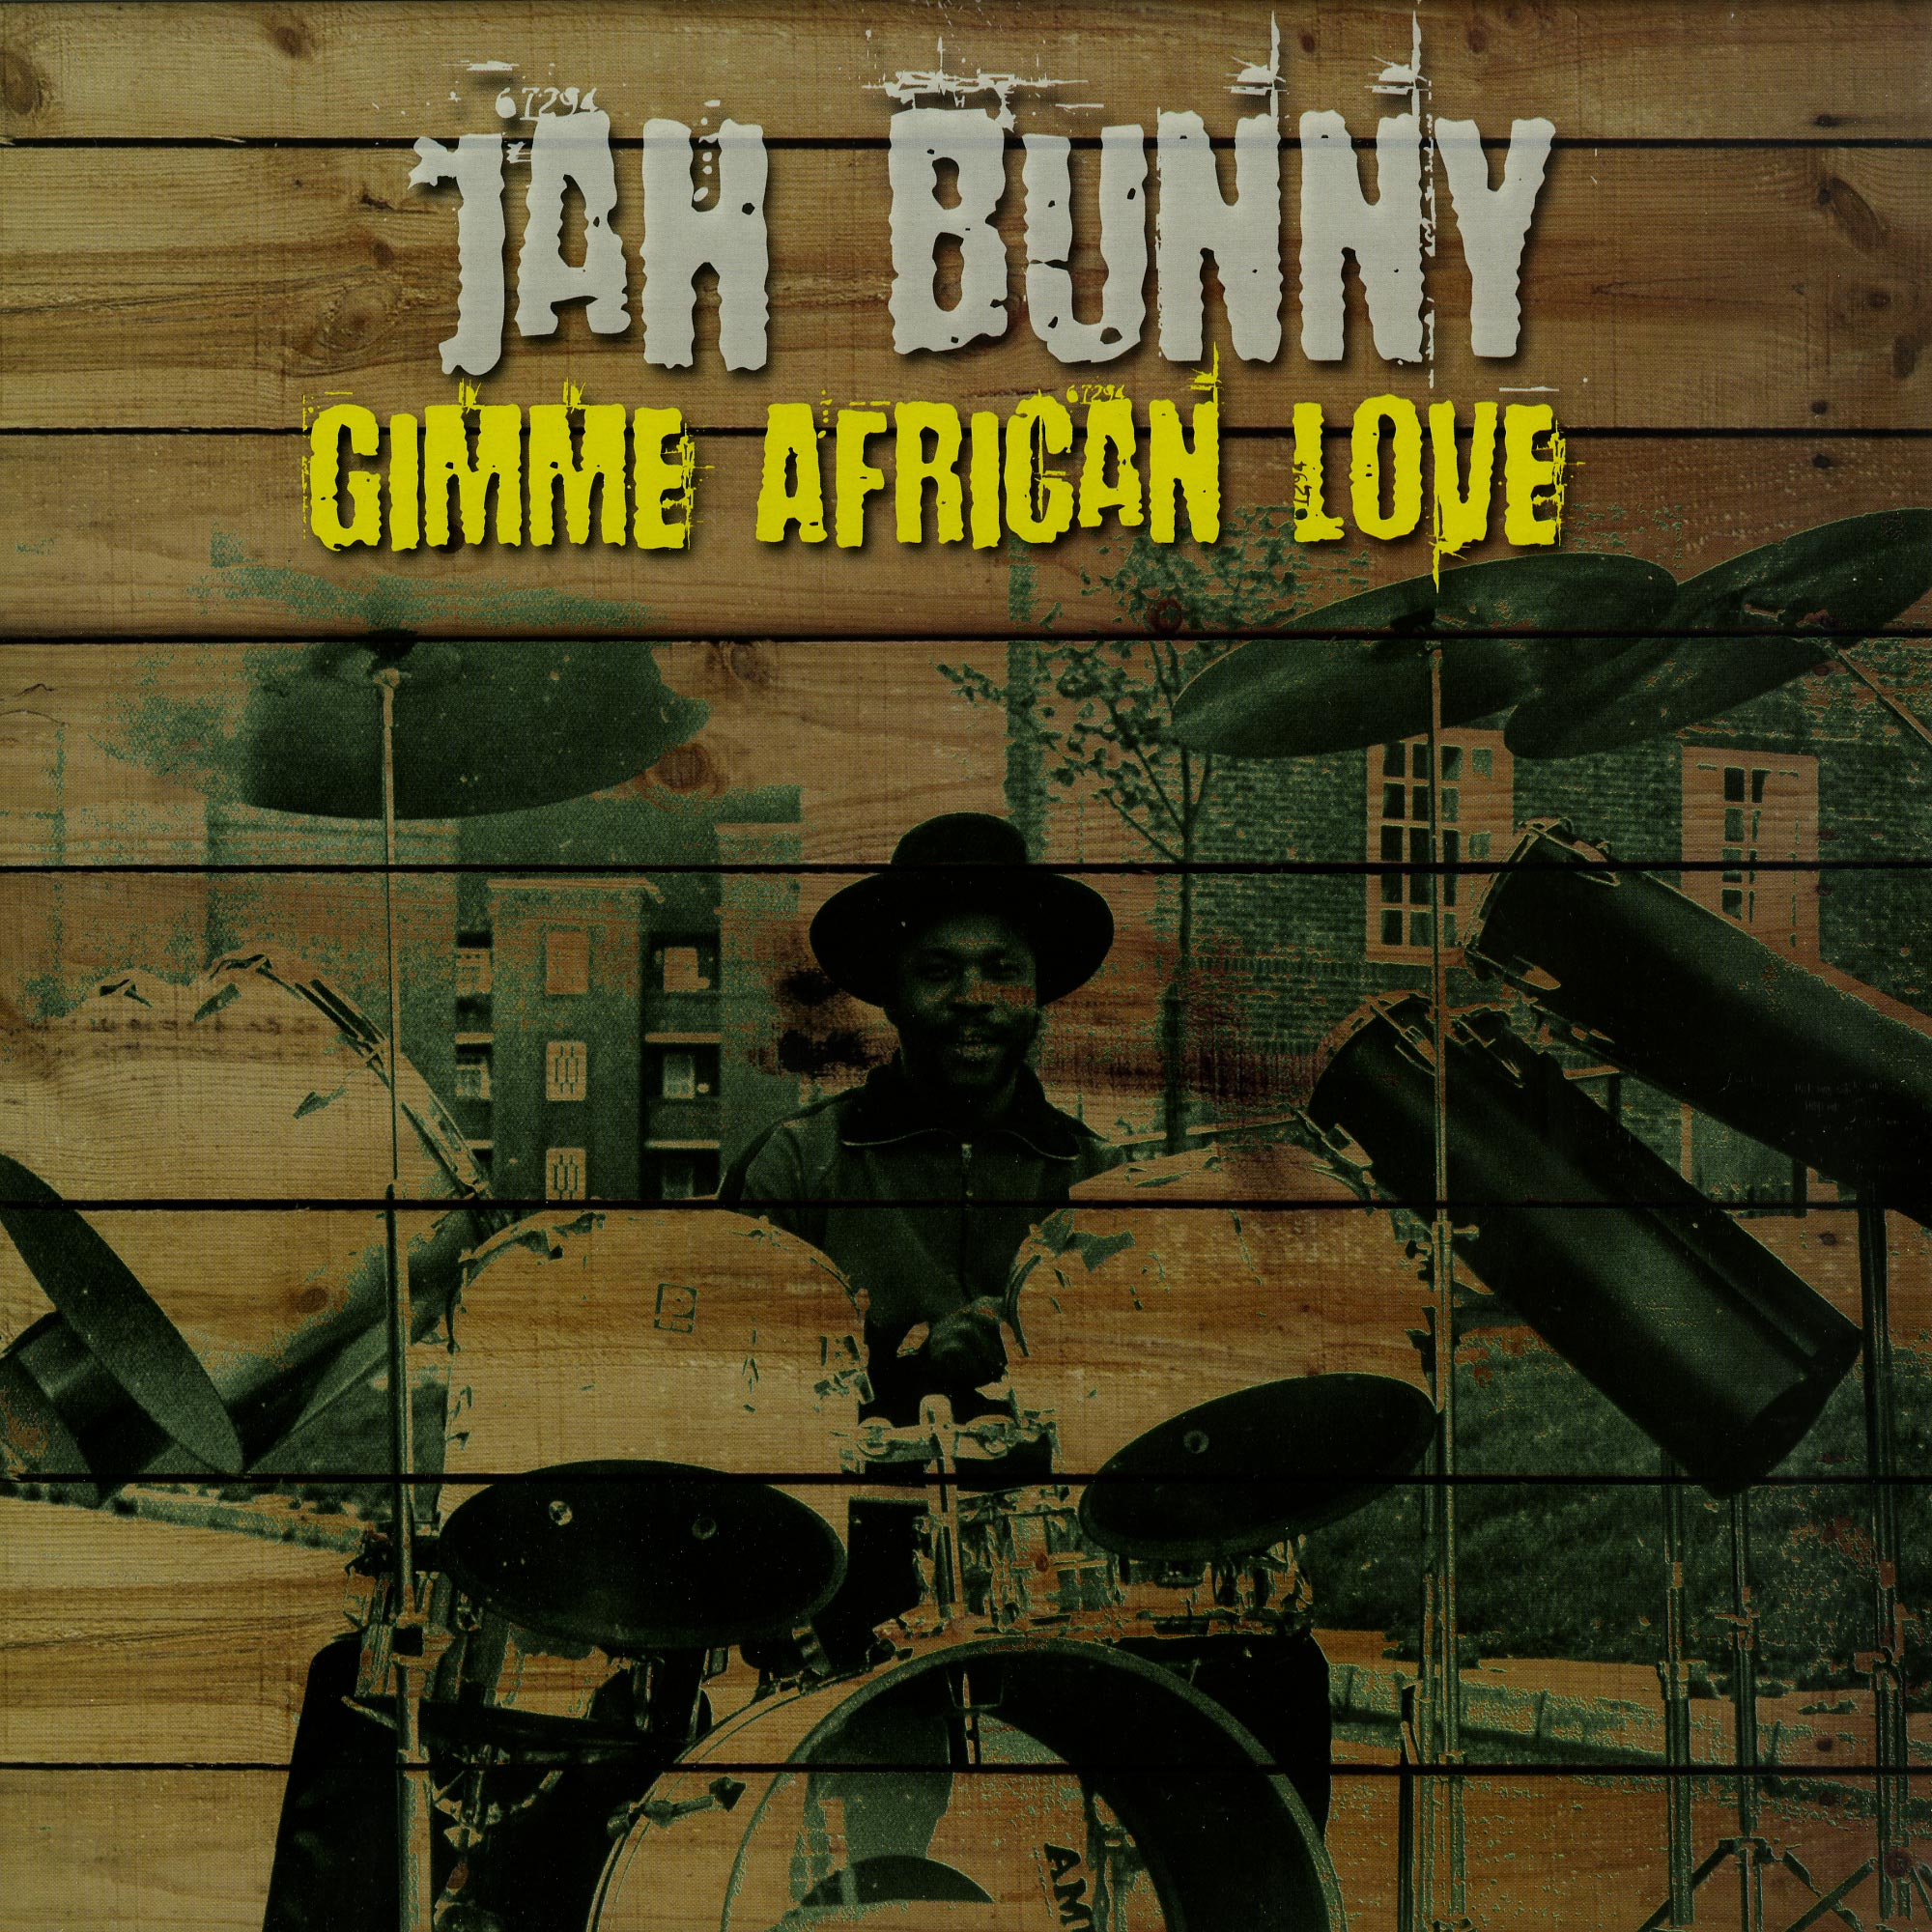 Jah Bunny - GIMME AFRICAN LOVE